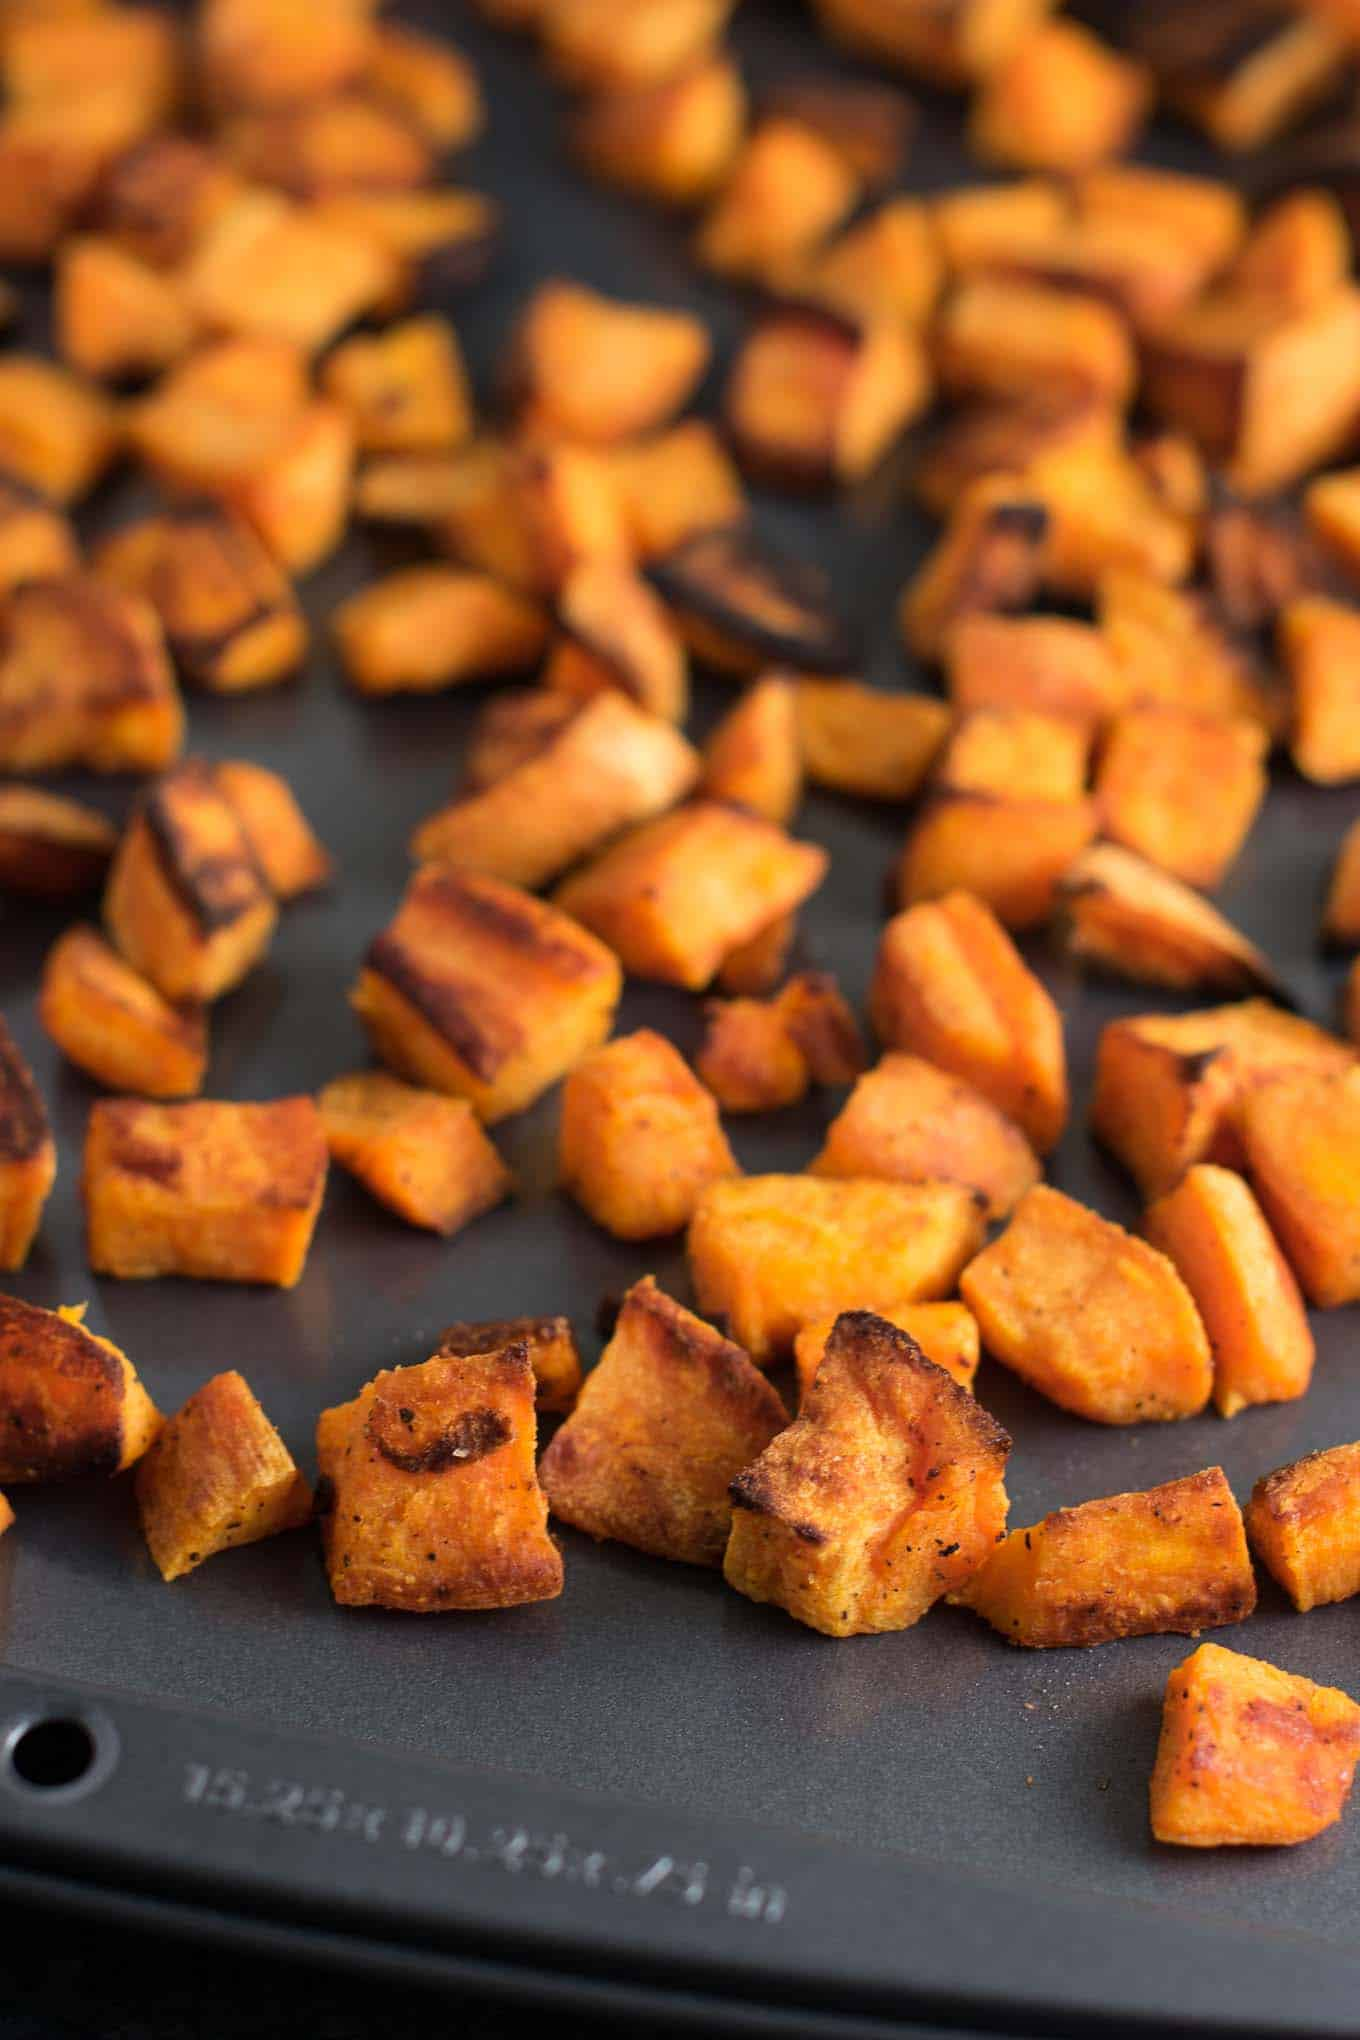 These easy roasted sweet potatoes are made with just 5 ingredients and ready in less than 30 minutes. Versatile enough to eat for any meal of the day!